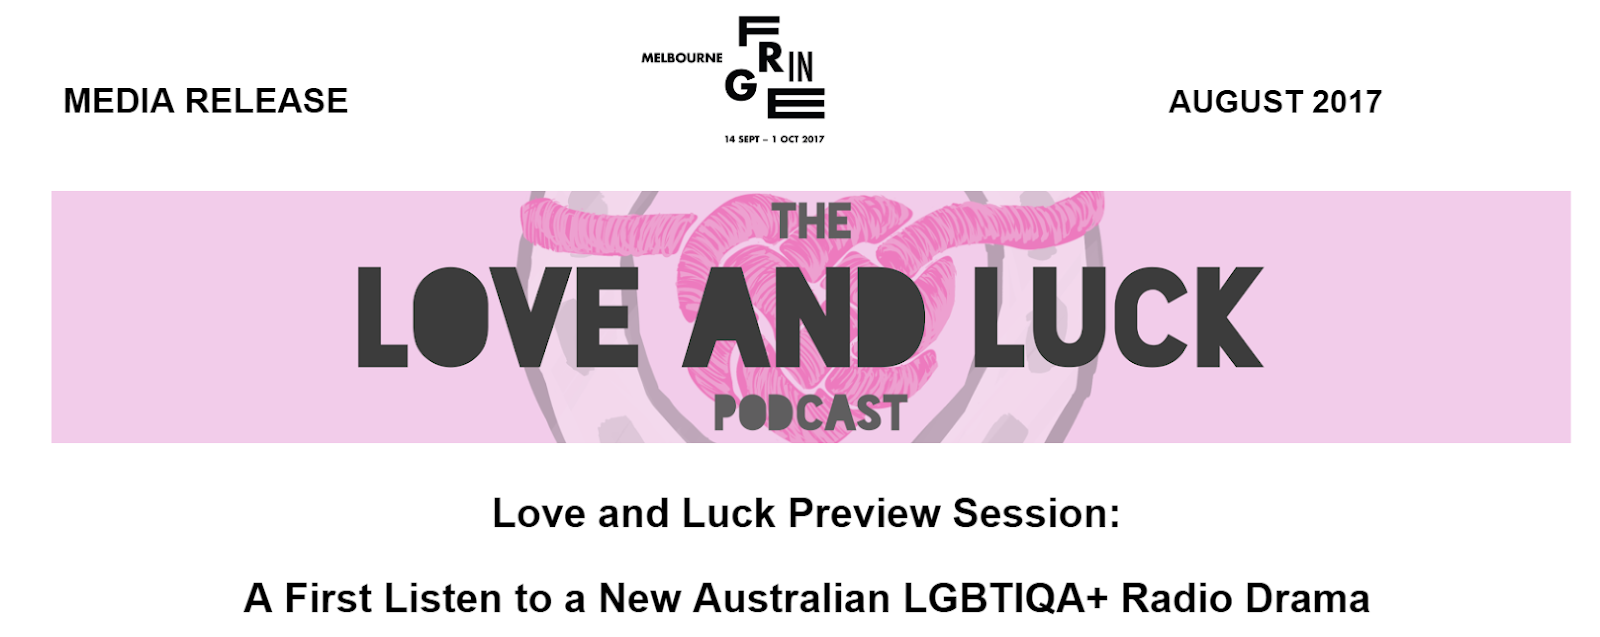 MEDIA RELEASE Melbourne Fringe logo AUGUST 2017  The Love and Luck Podcast  Love and Luck Preview Sessions: A First Listen to a New Australian LGBTIQA+ Radio DRama